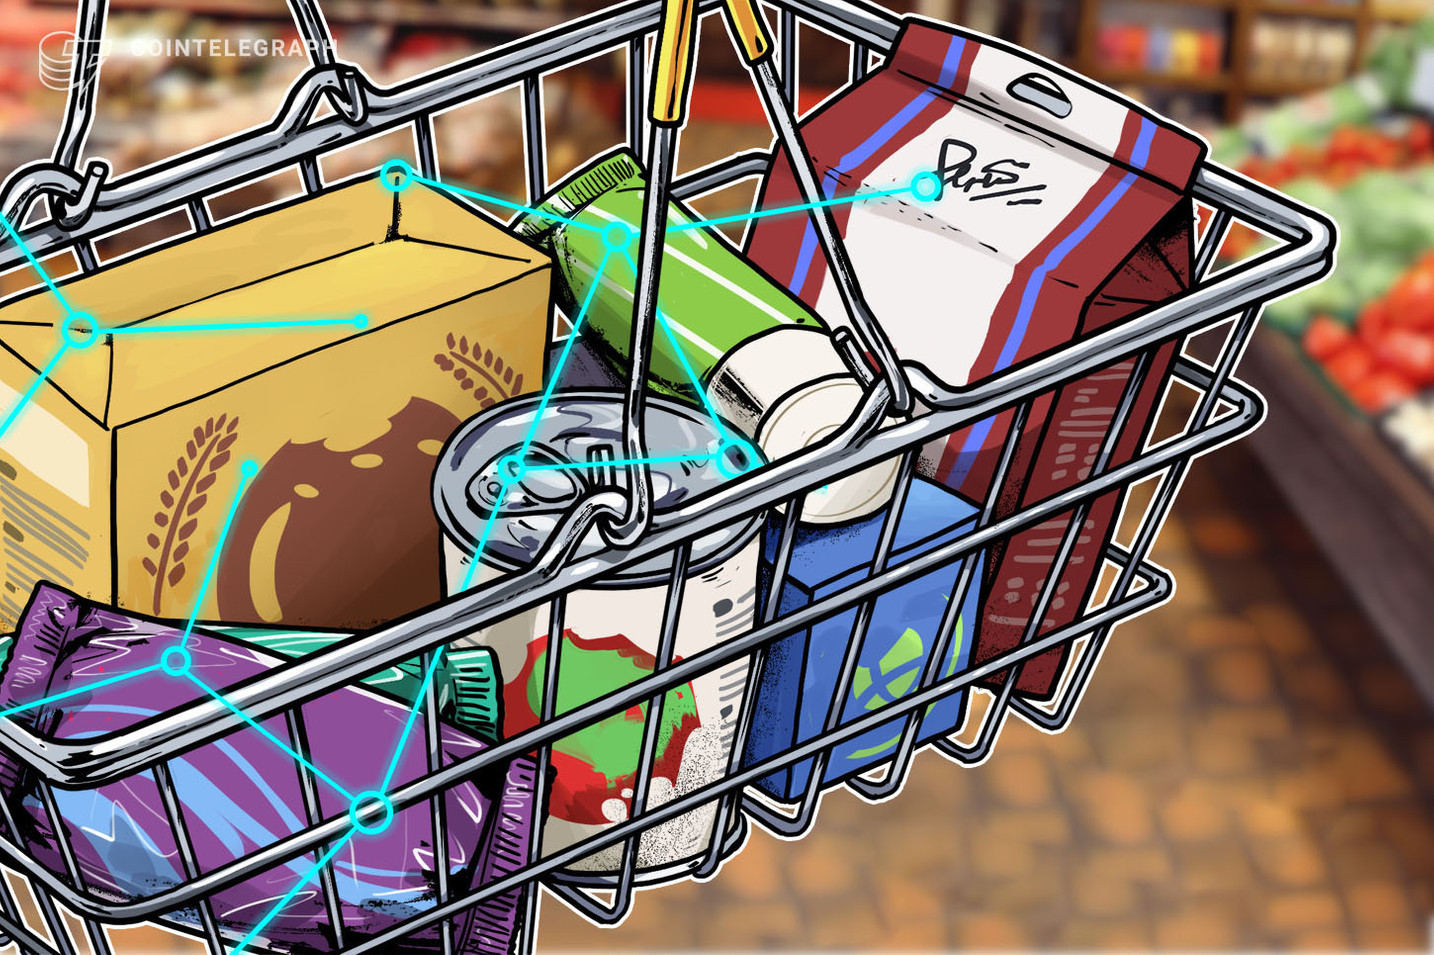 Carrefour, Nestlé Use IBM's Blockchain Platform to Track Infant Formula